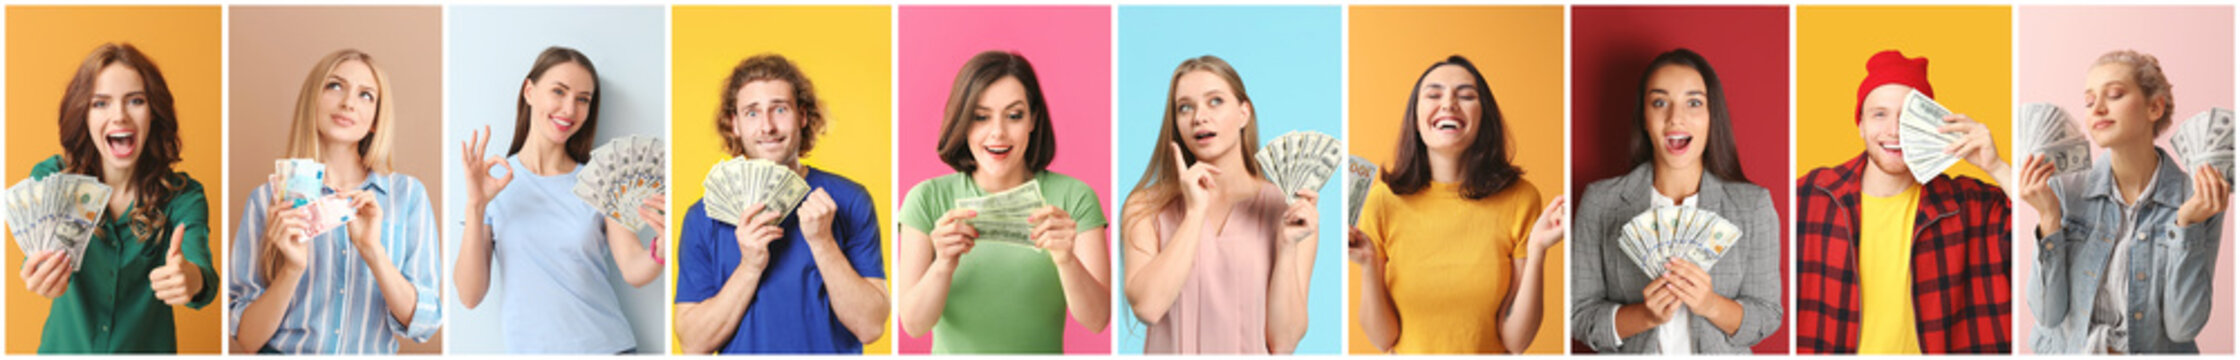 Collage of photos with emotional young people holding their money